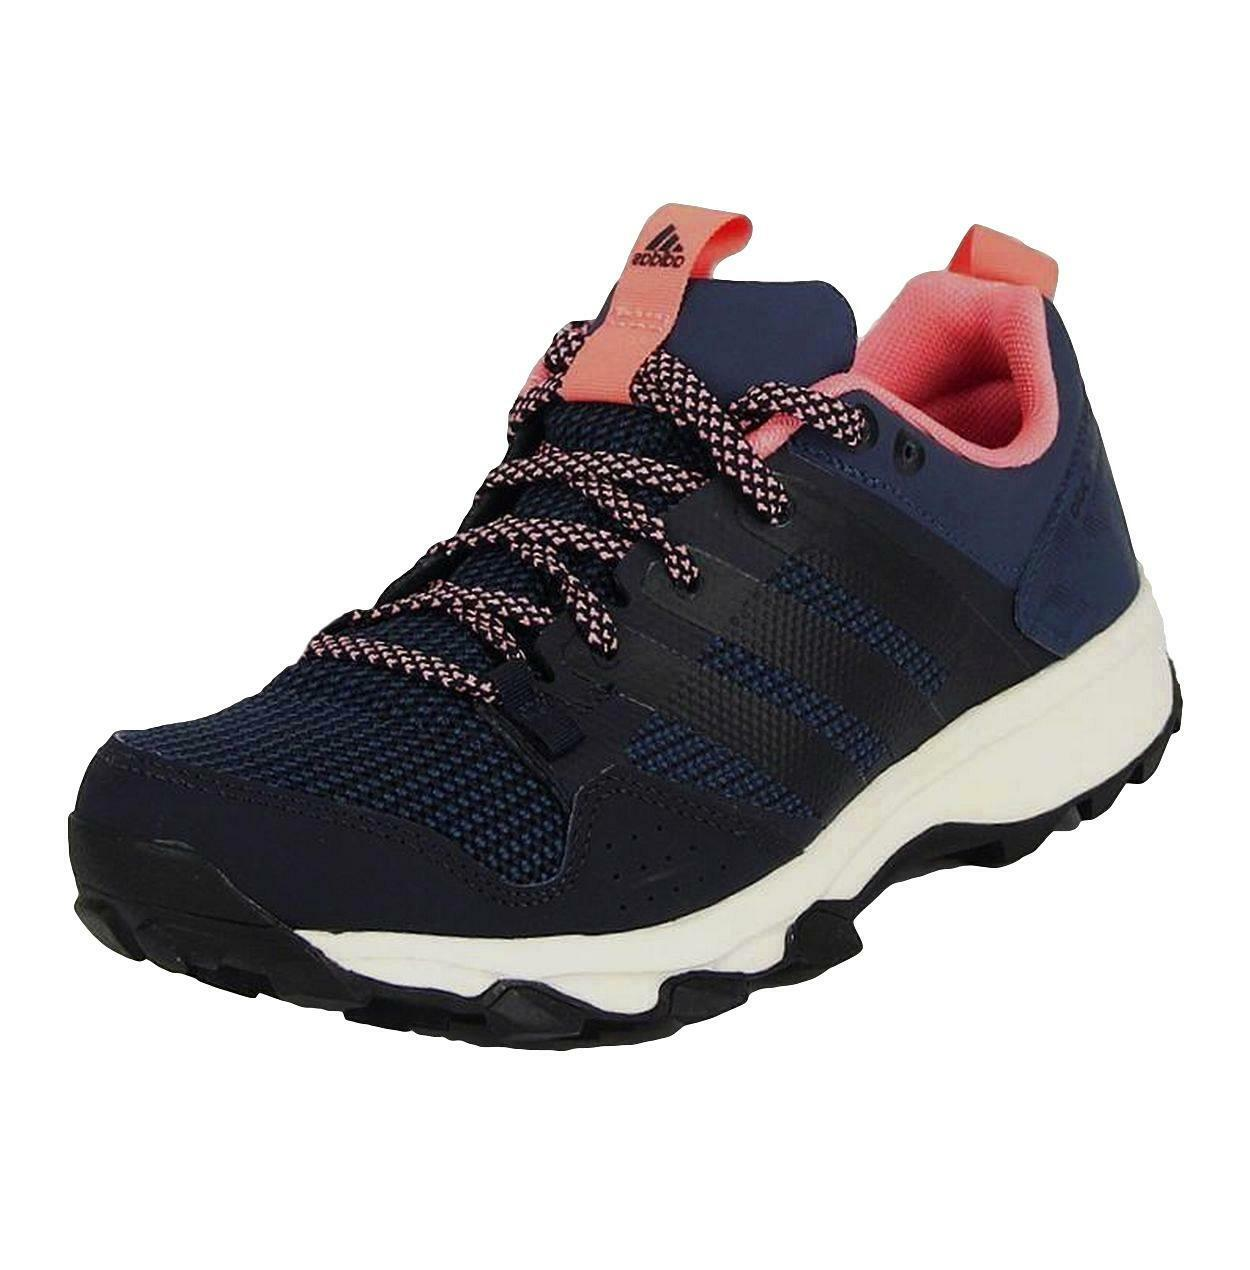 adidas Performance Damen Kanadia 7 traillauf Turnschuhe